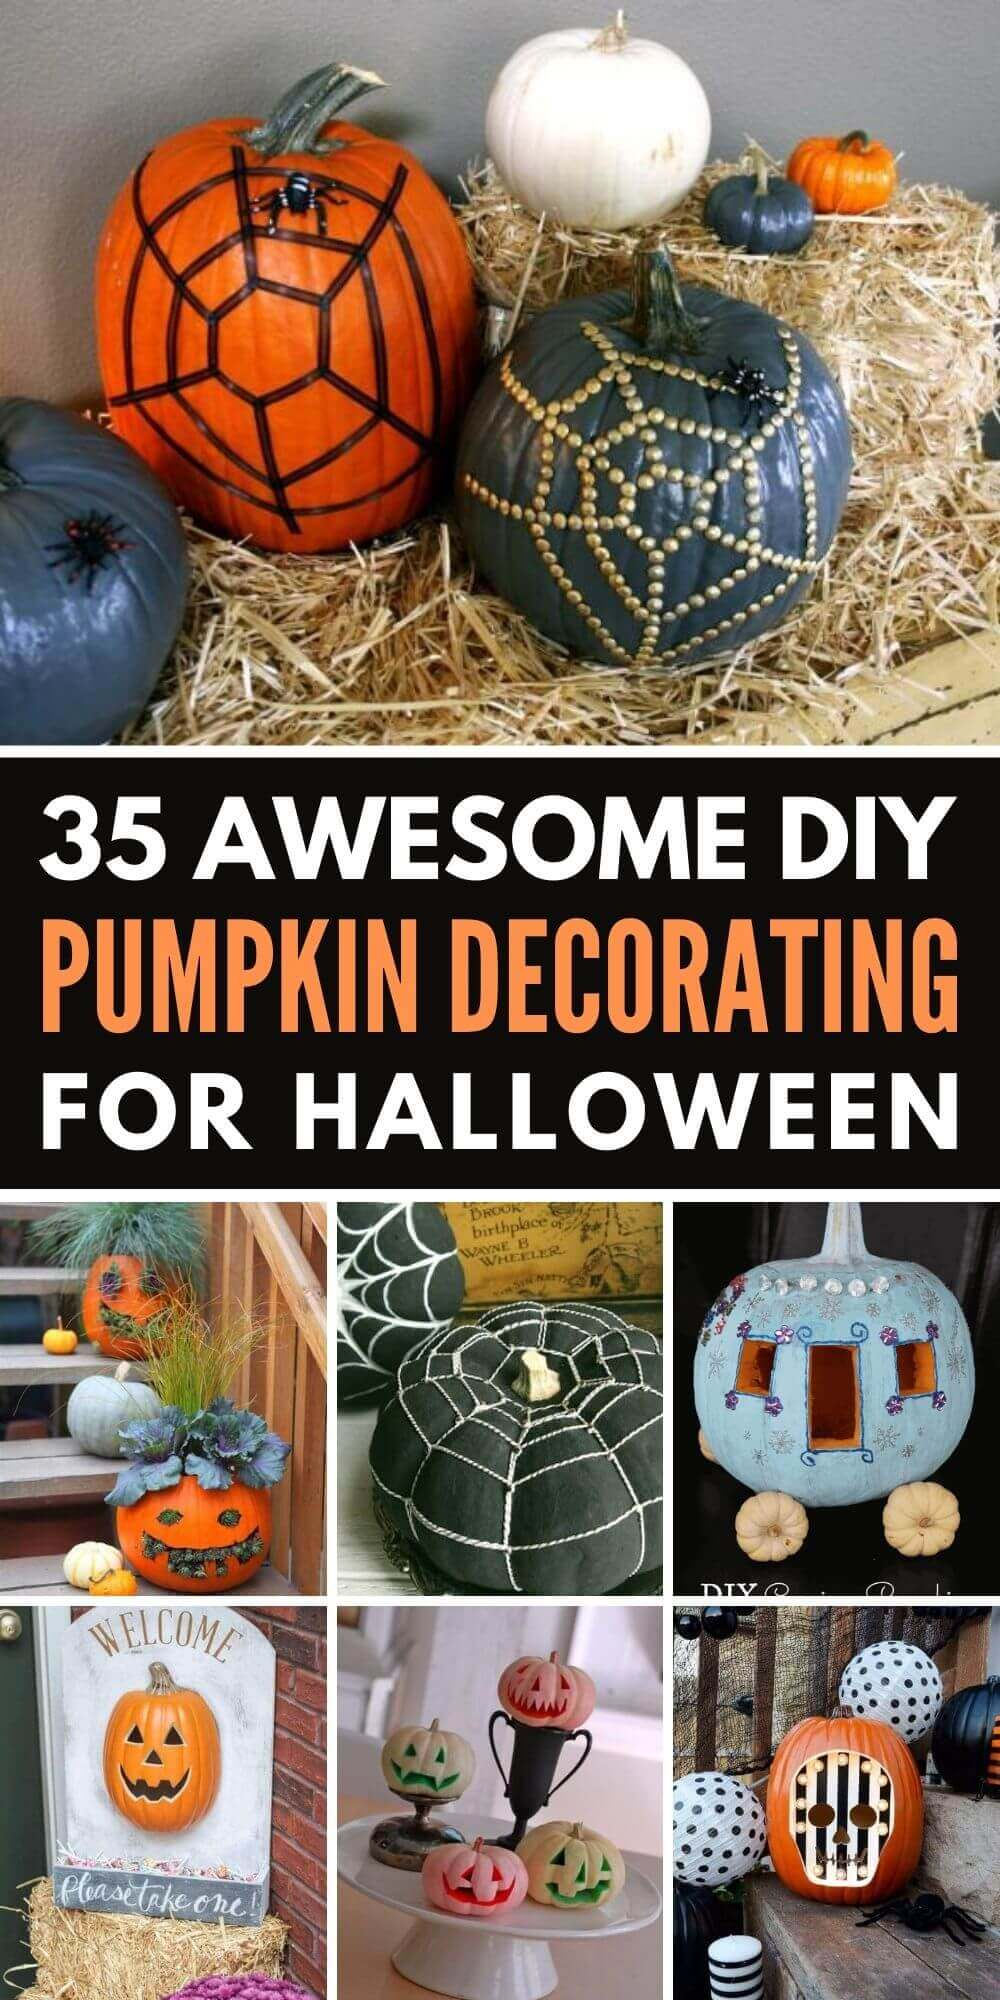 35 Awesome DIY Pumpkin Decorating Ideas For Halloween